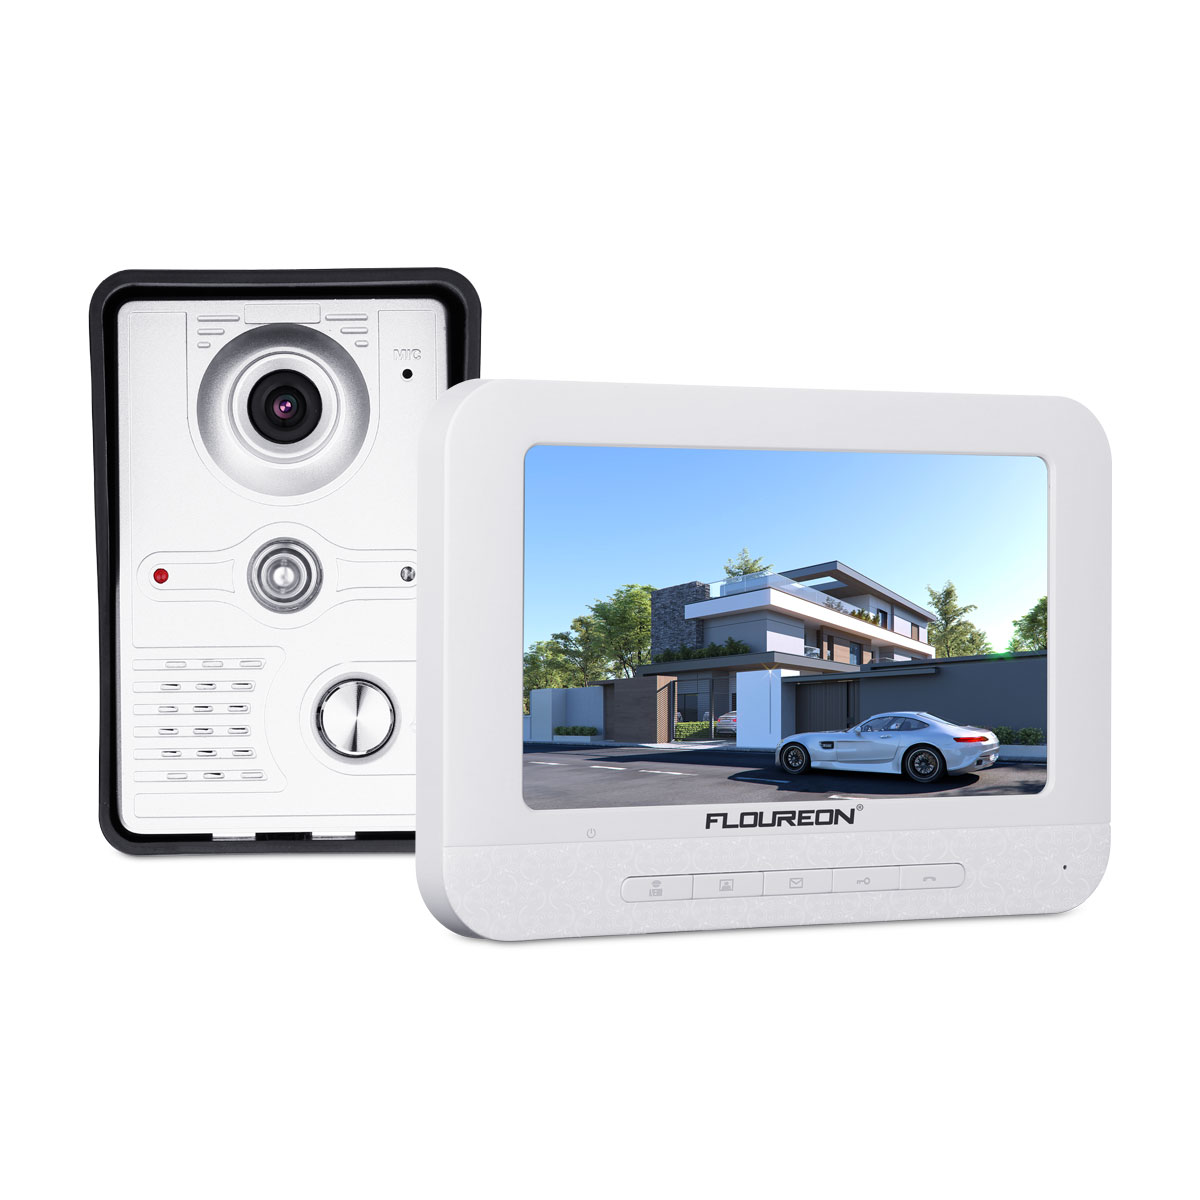 FLOUREON Video Doorbell Kit,7-inch Color Monitors and Surface Mounted HD Camera Video Doorphone,IntercomIR CCTV Camera Monitor for Private Houses, Villas, Offices, Hotels